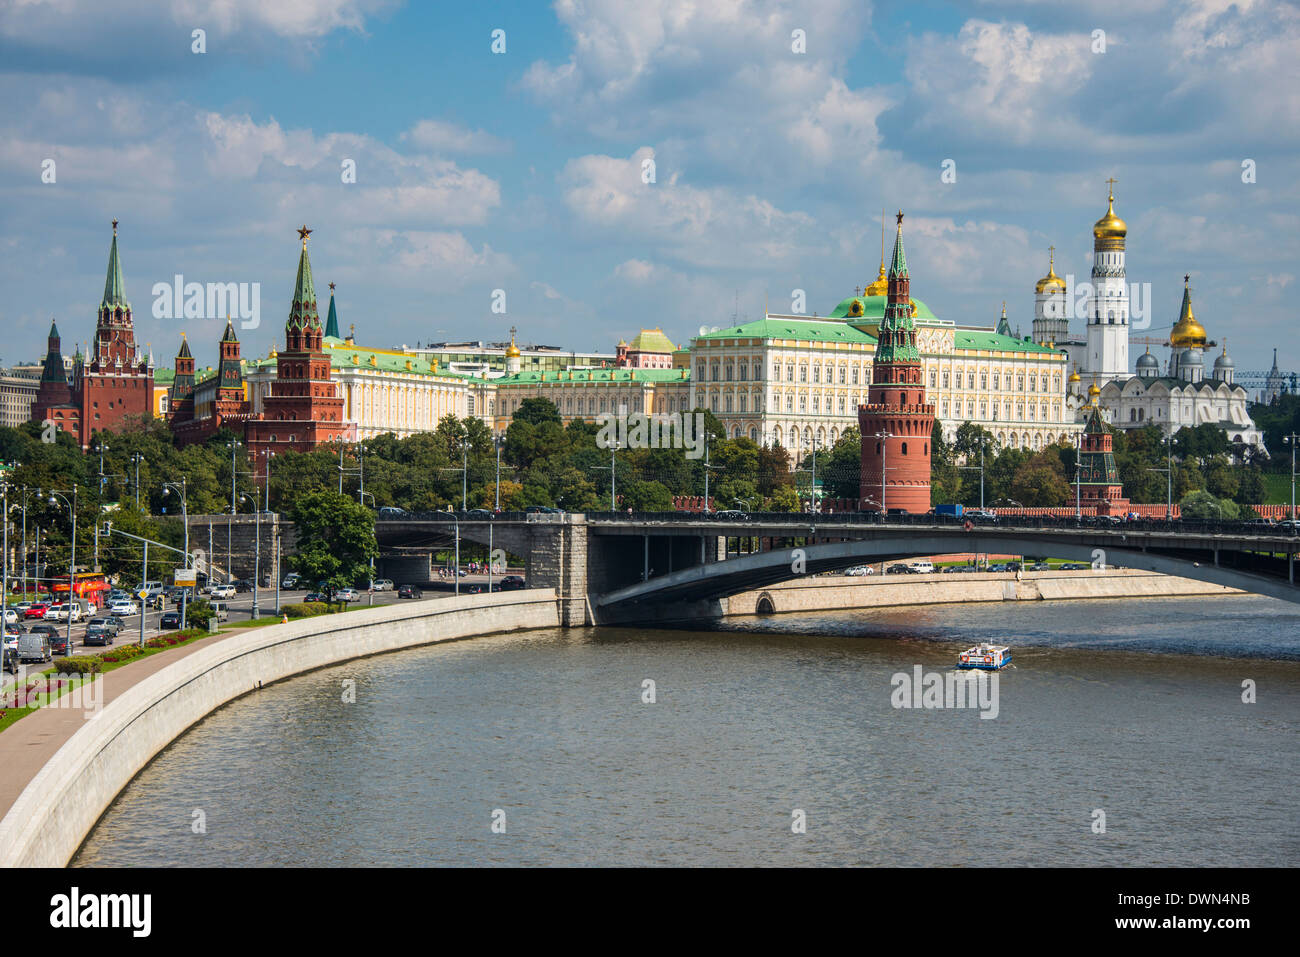 The Moskva River (Moscow River) and the Kremlin, UNESCO World Heritage Site, Moscow, Russia, Europe - Stock Image